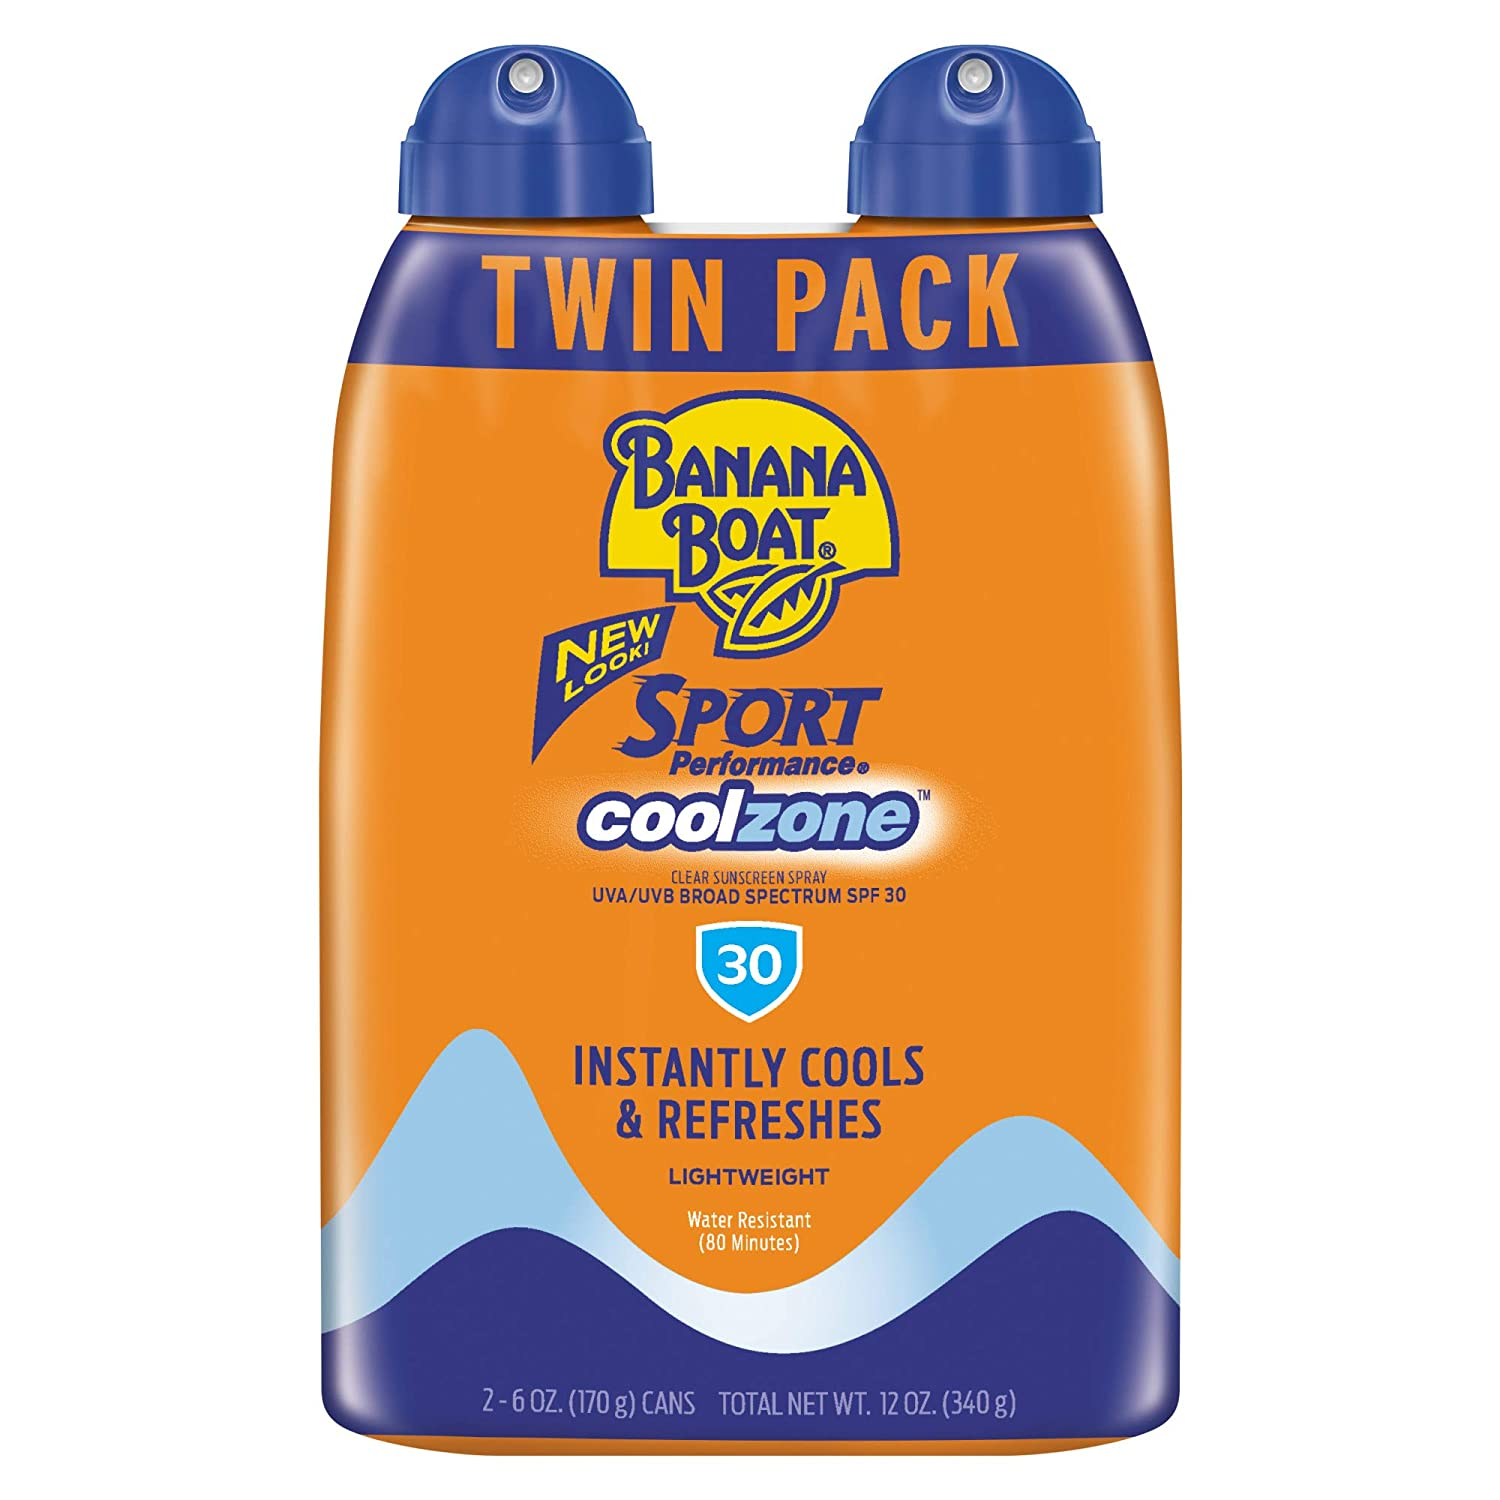 Banana Boat Sunscreen Sport Performance Coolzone, Broad Spectrum Sunscreen Spray, SPF 30, 6 Ounce - Twin Pack